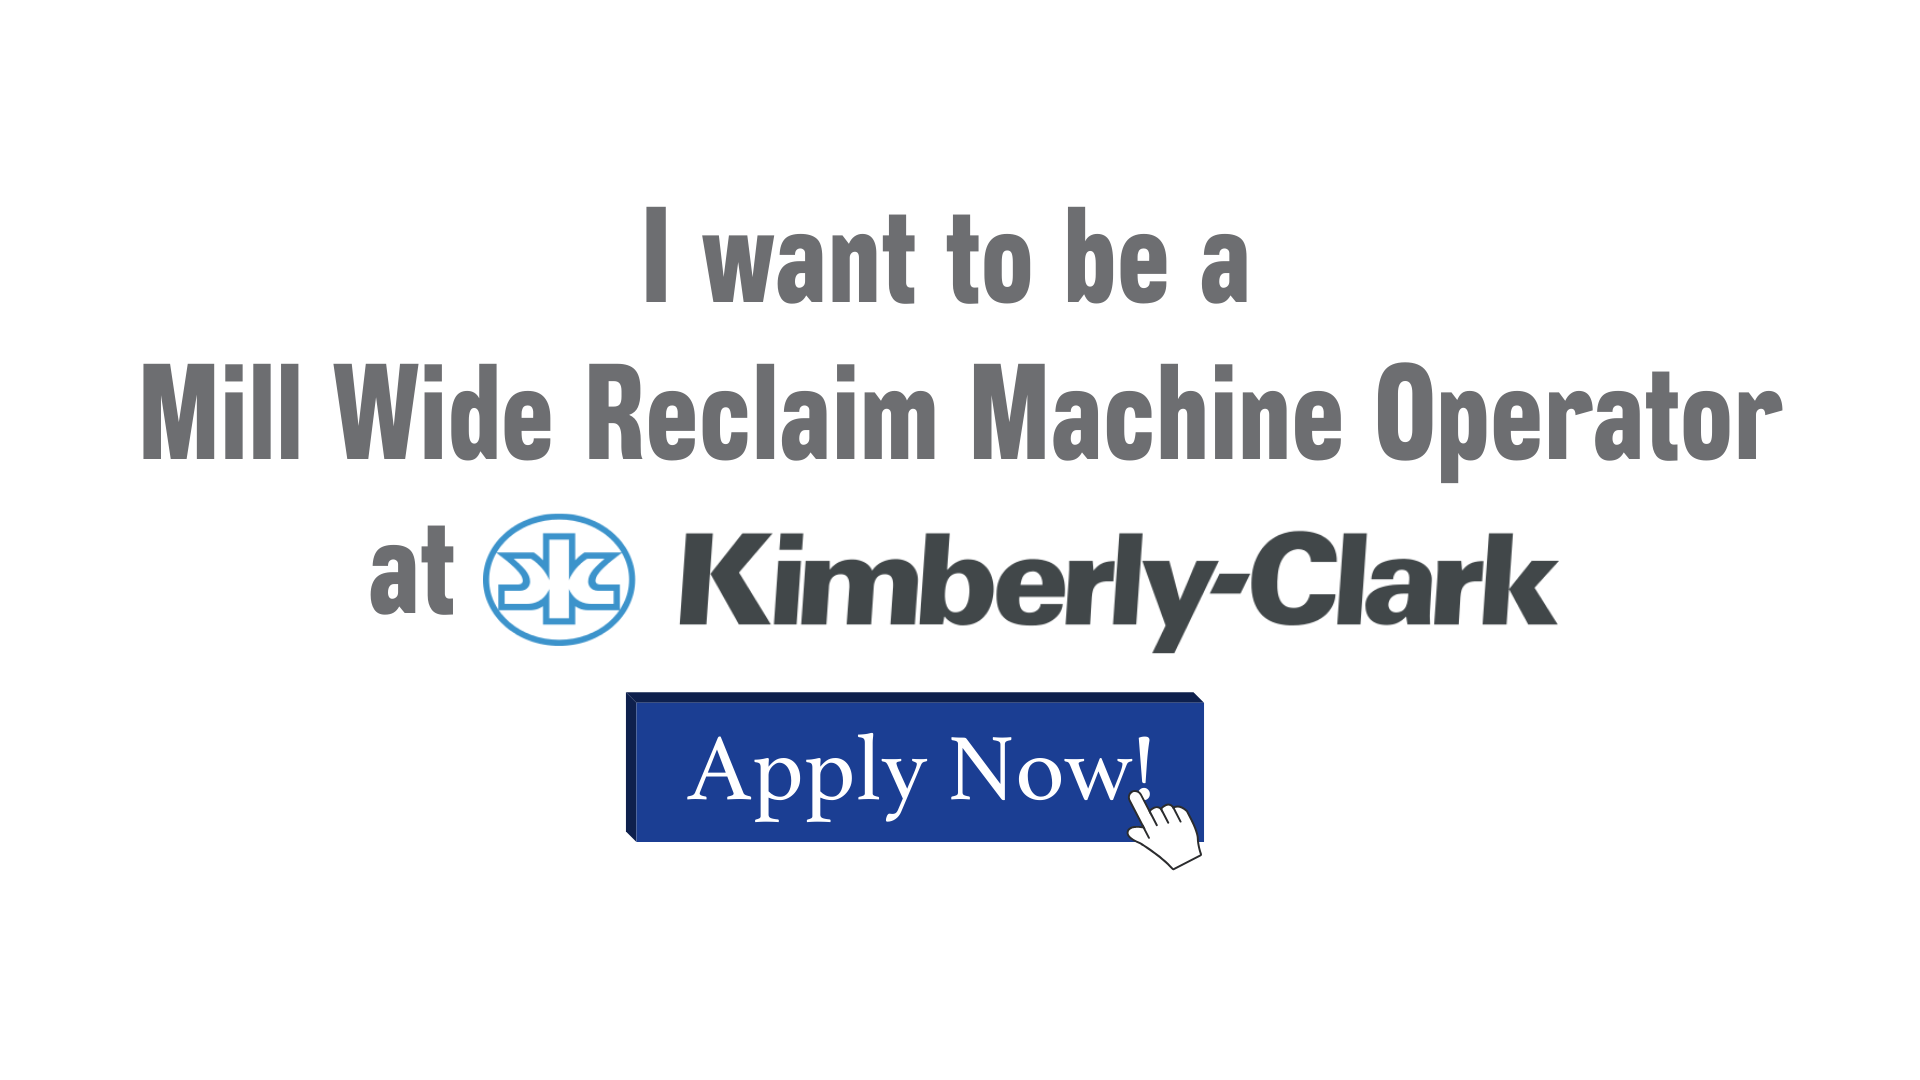 I want to be a Mill Wide Reclaim Machine Operator in Hendersonville